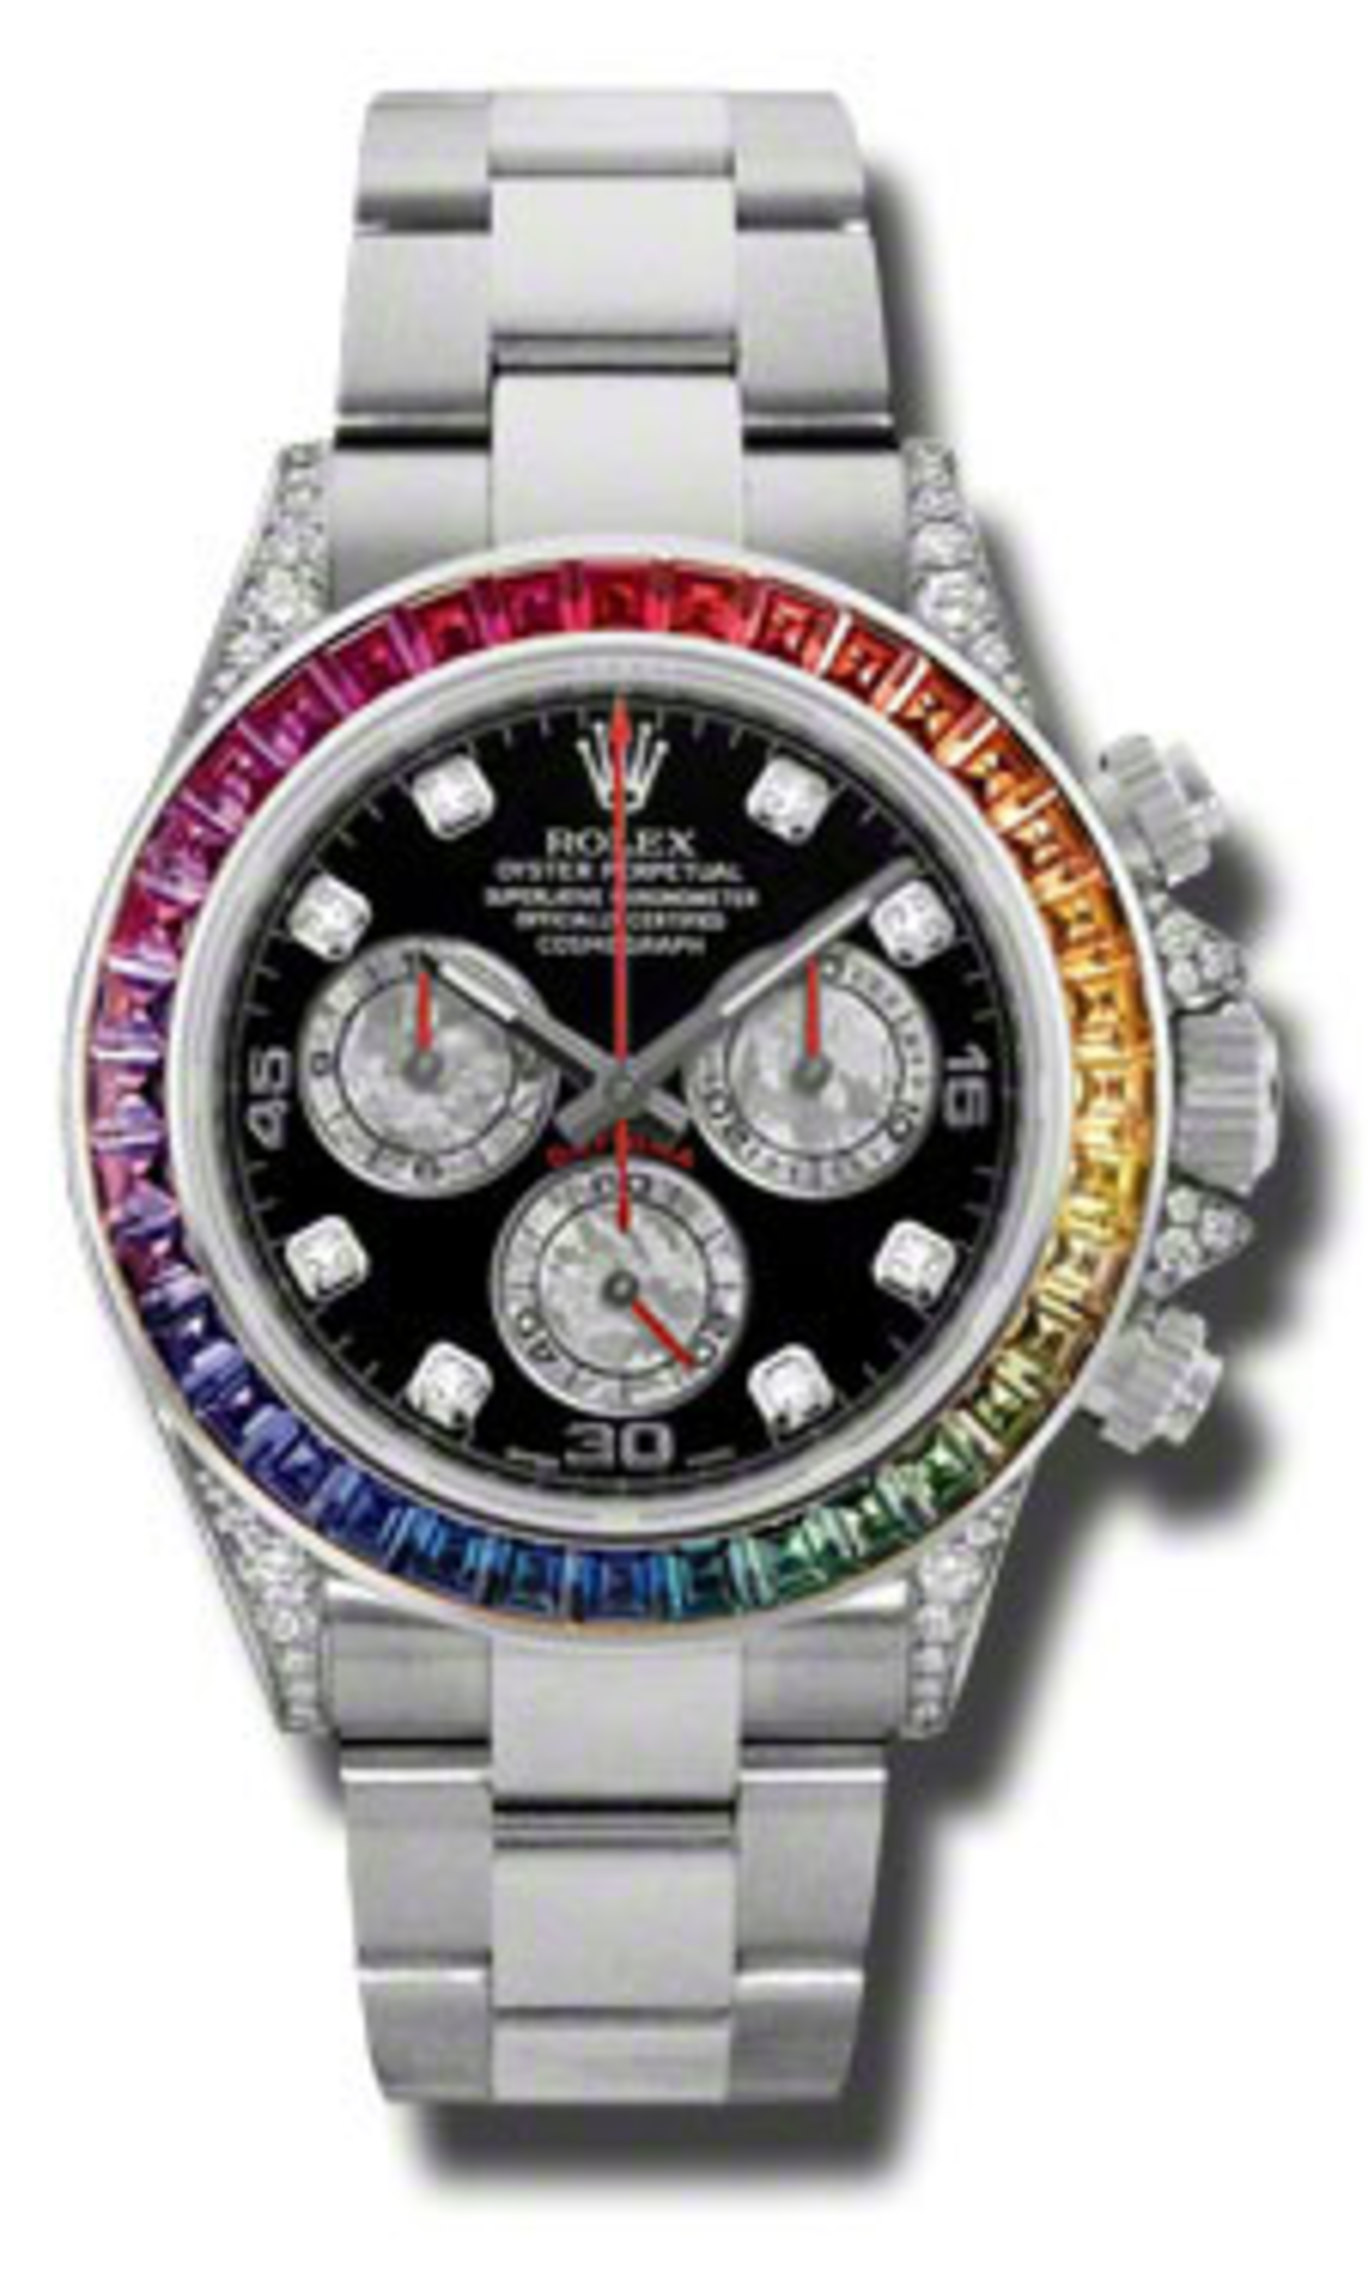 Rolex Oyster Perpetual Cosmograph White Gold Daytona Rainbow (New unworn)